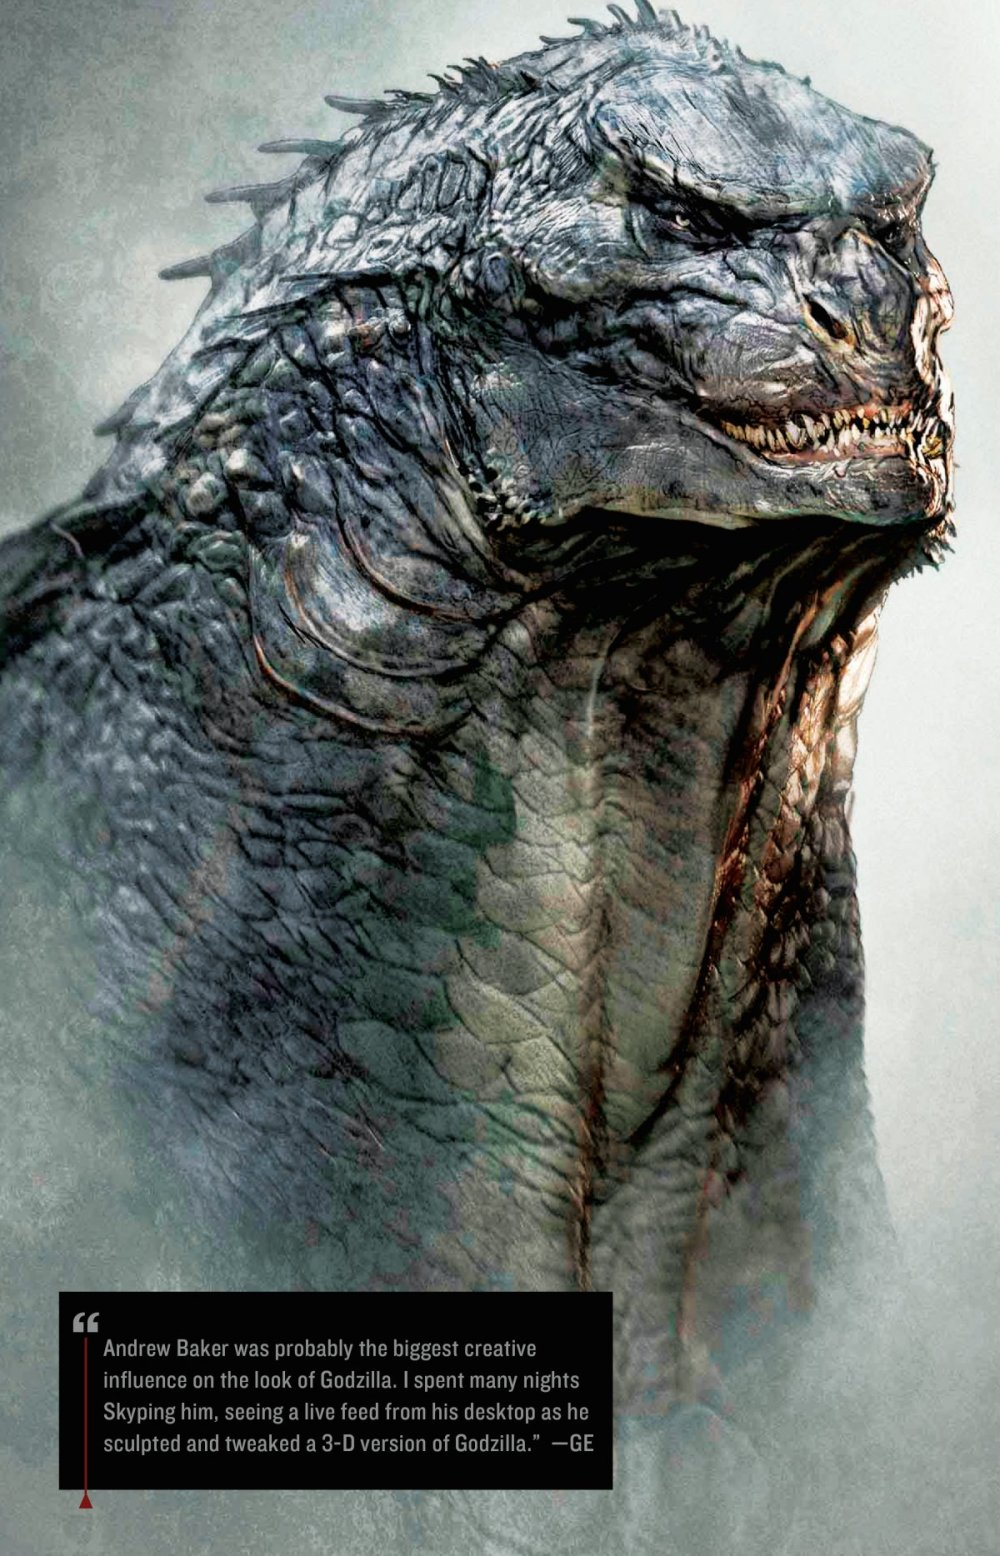 this-is-a-3-d-rendering-of-godzilla.jpg